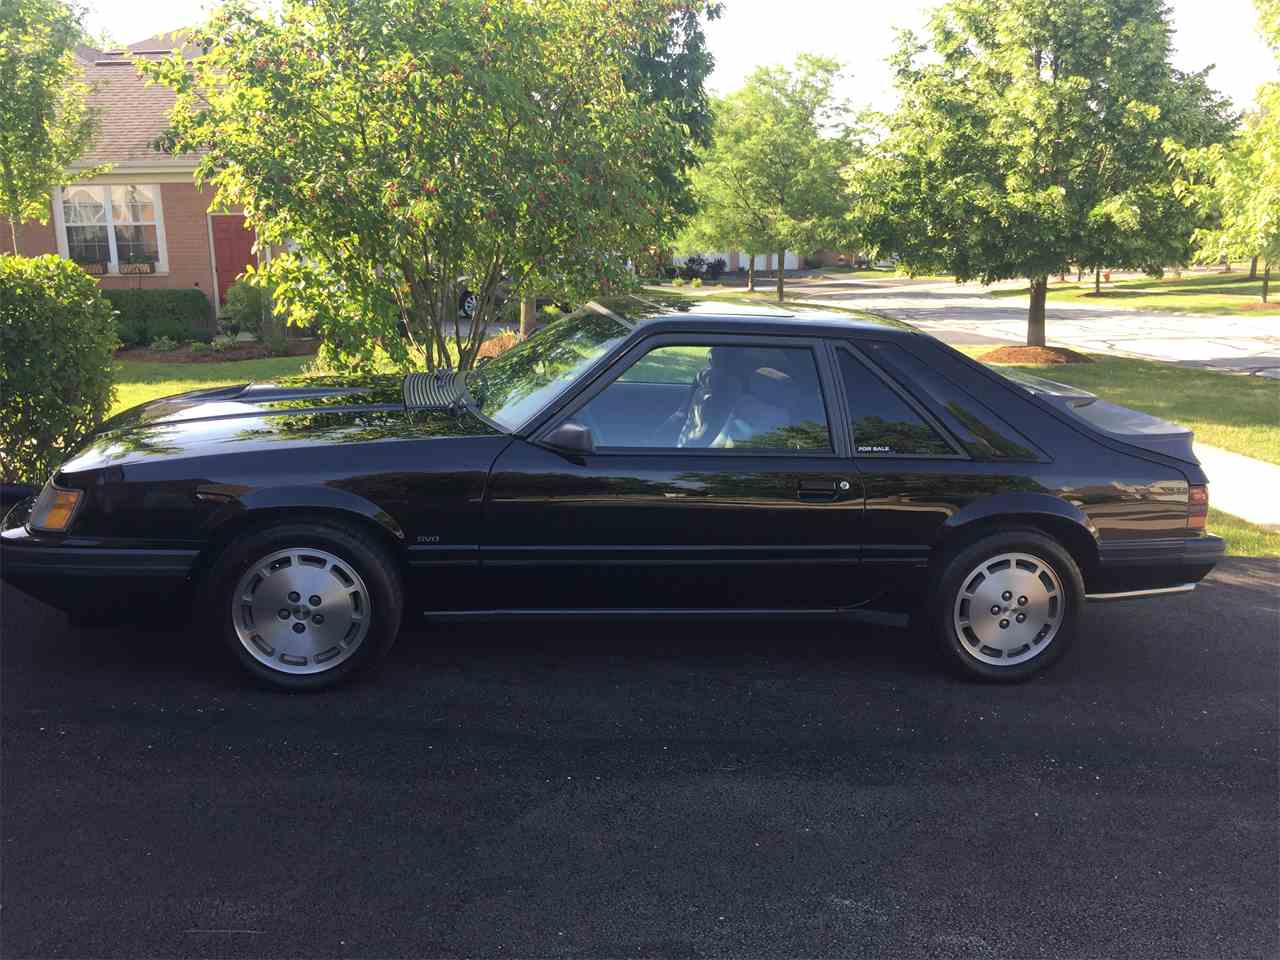 Large Picture of 1986 Mustang SVO located in Naperville Illinois - $6,900.00 - L8BI